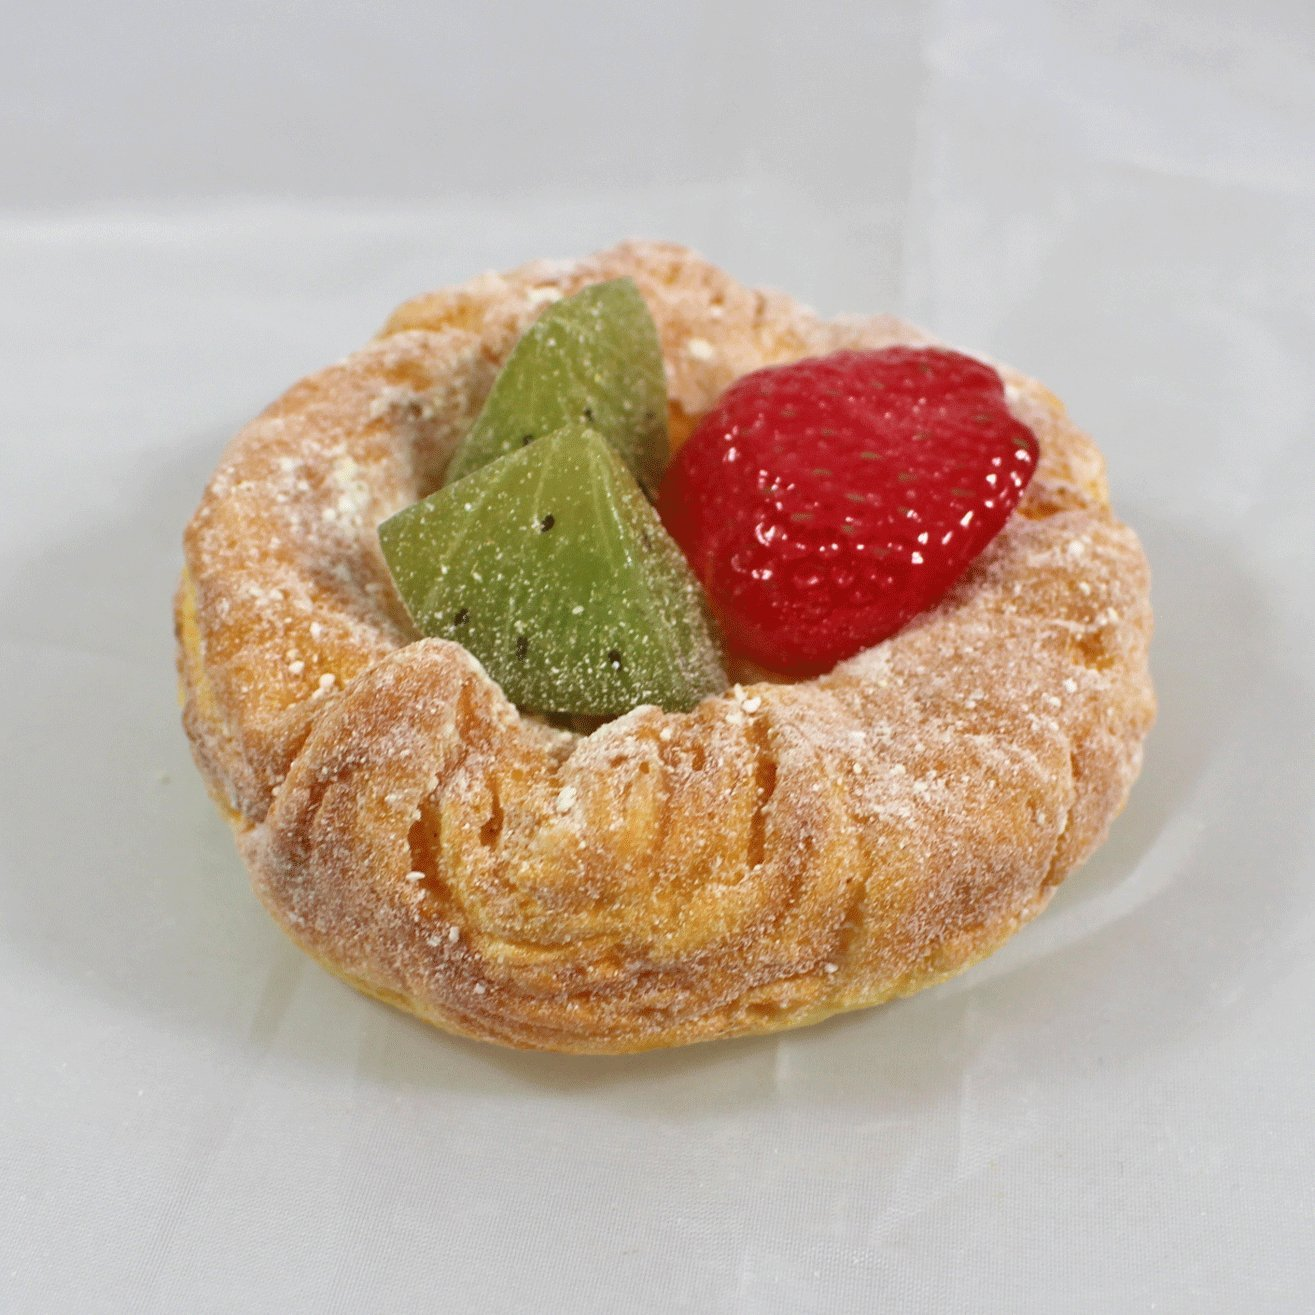 Just Dough It FakeラウンドPastry Topped With Fruit   B07D9XMKK3